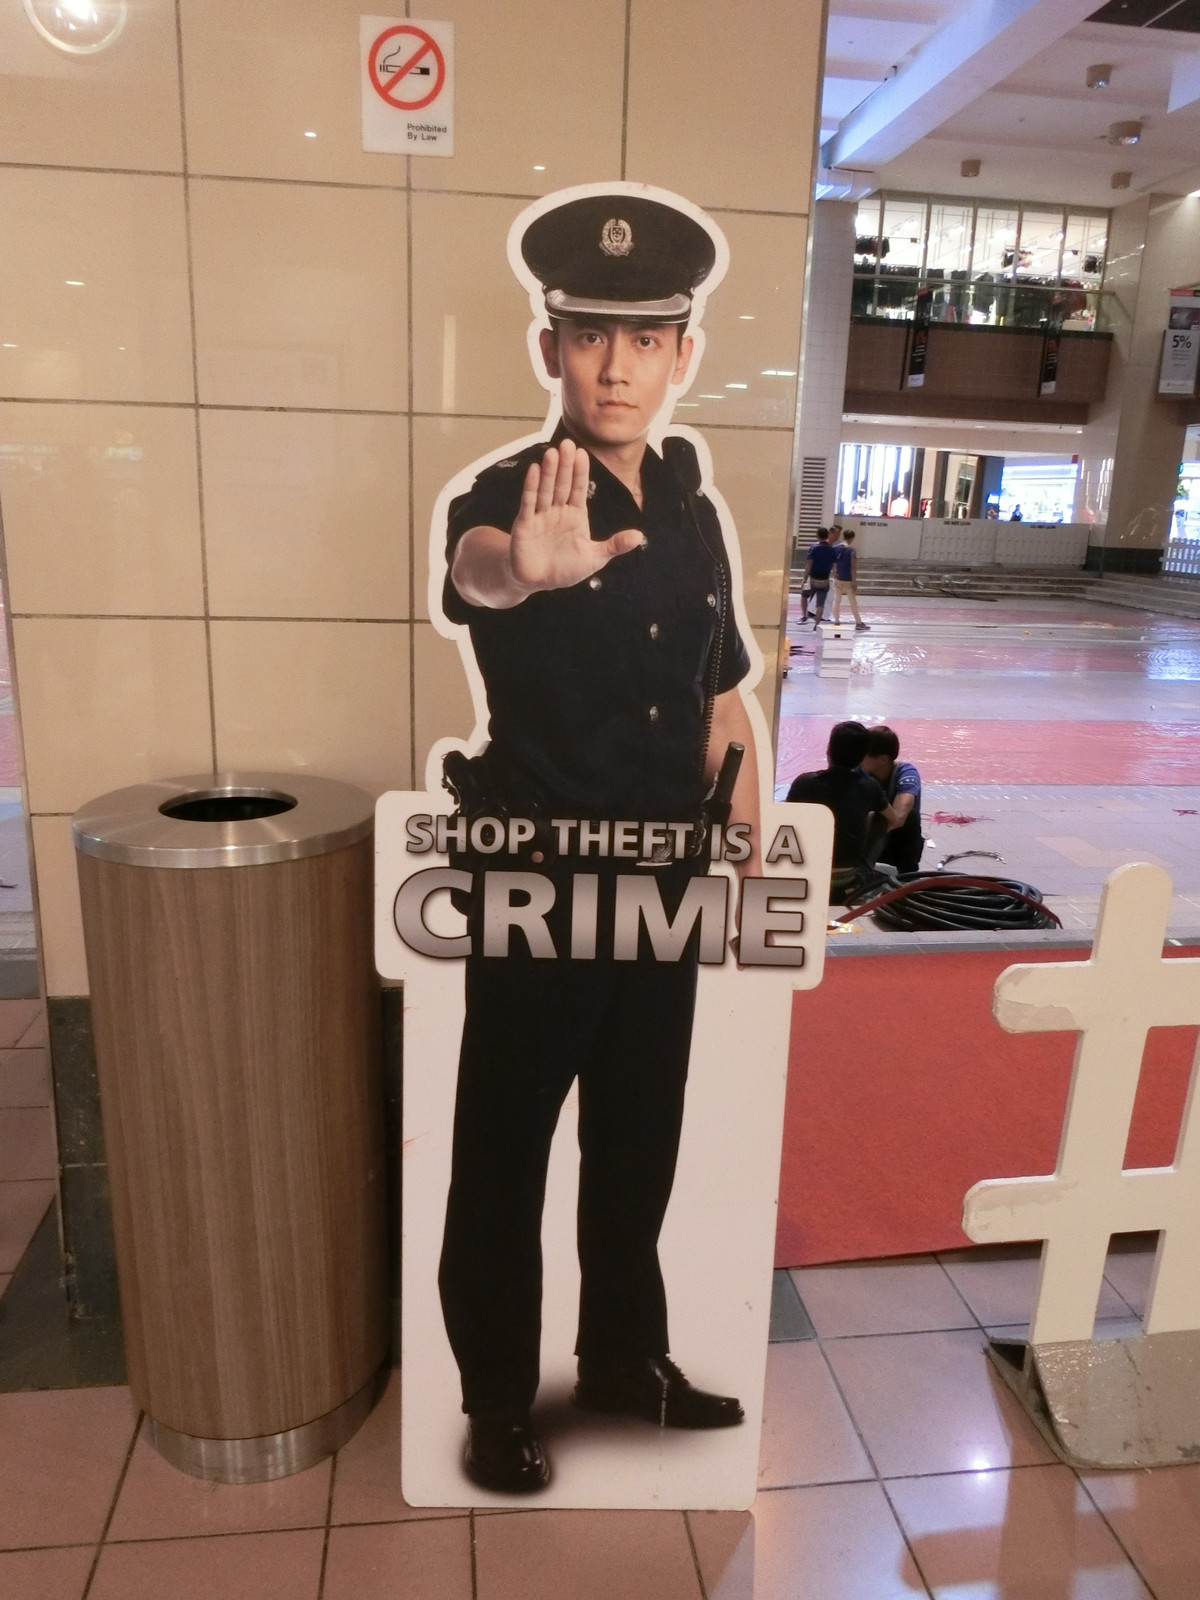 Singapore_shop_theft_is_a_crime